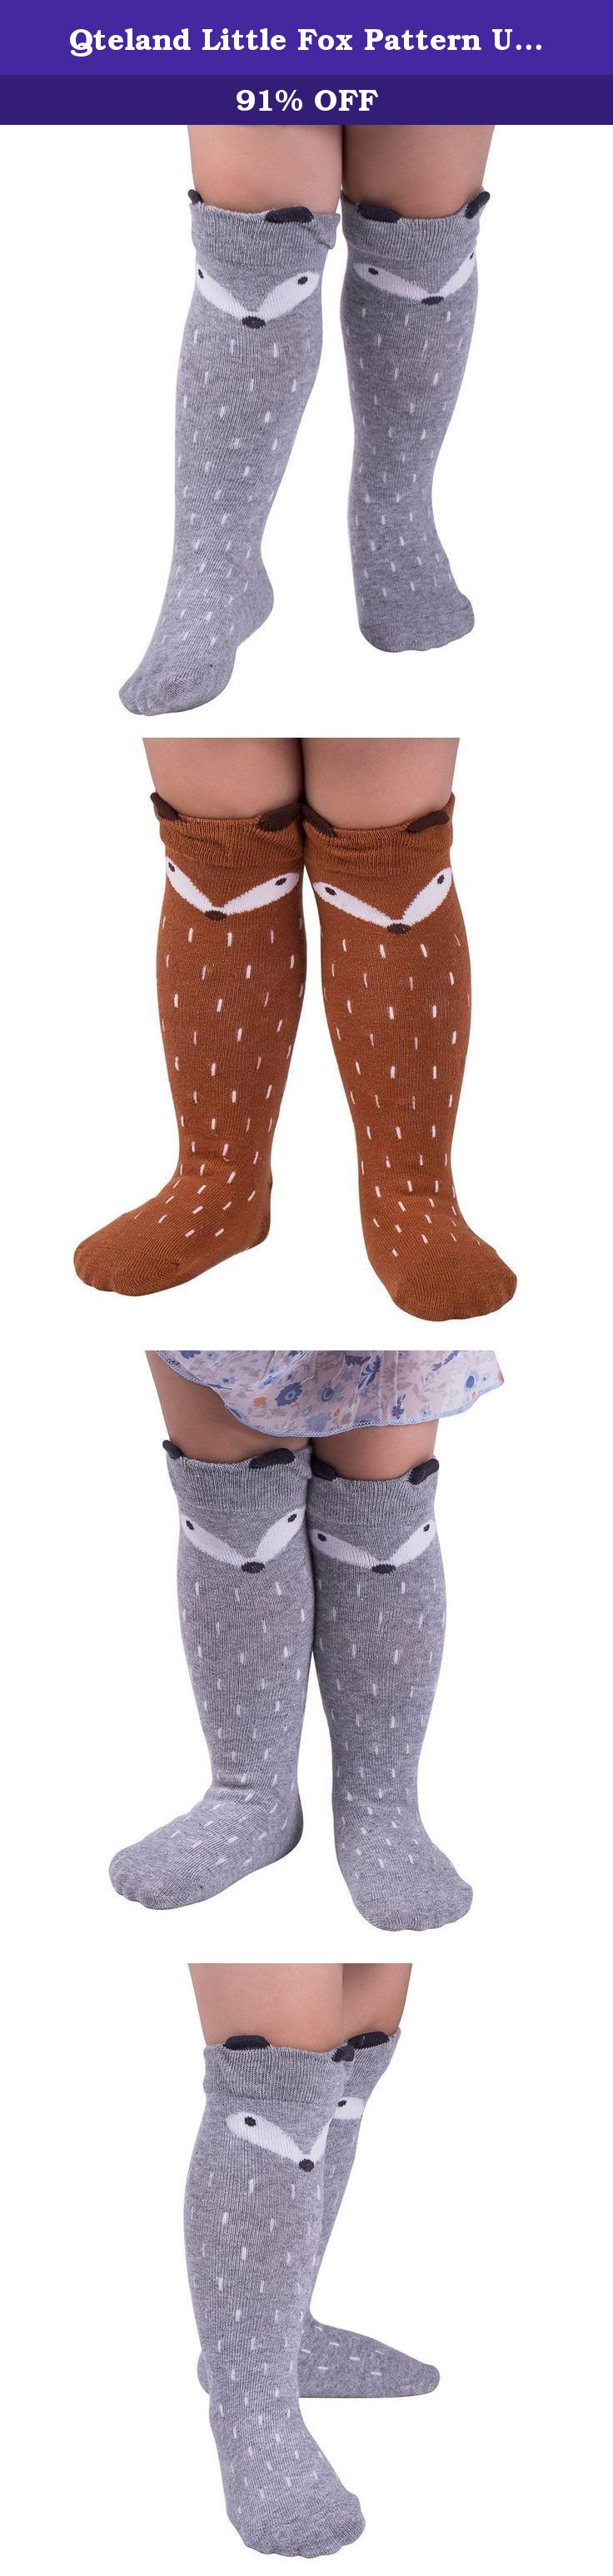 Qteland Little Fox Pattern Unisex-baby Knee High Socks Tube socks for Kids 2-pack (M(1-3 years), Mix). Qteland Cotton high knee socks for Babies are an adorable and fashion item dress up your little one. Look for all of our adorable high knee socks! Available in stripes, Geometry,fox,cat,Mickey Mouse,bear, rabbit and so on. A material composition for comfort these socks are made of 75% cotton, 20% polyester, and 5% spandex for a snug, comfortable fit. Three size for your choose Size S: 0-12...